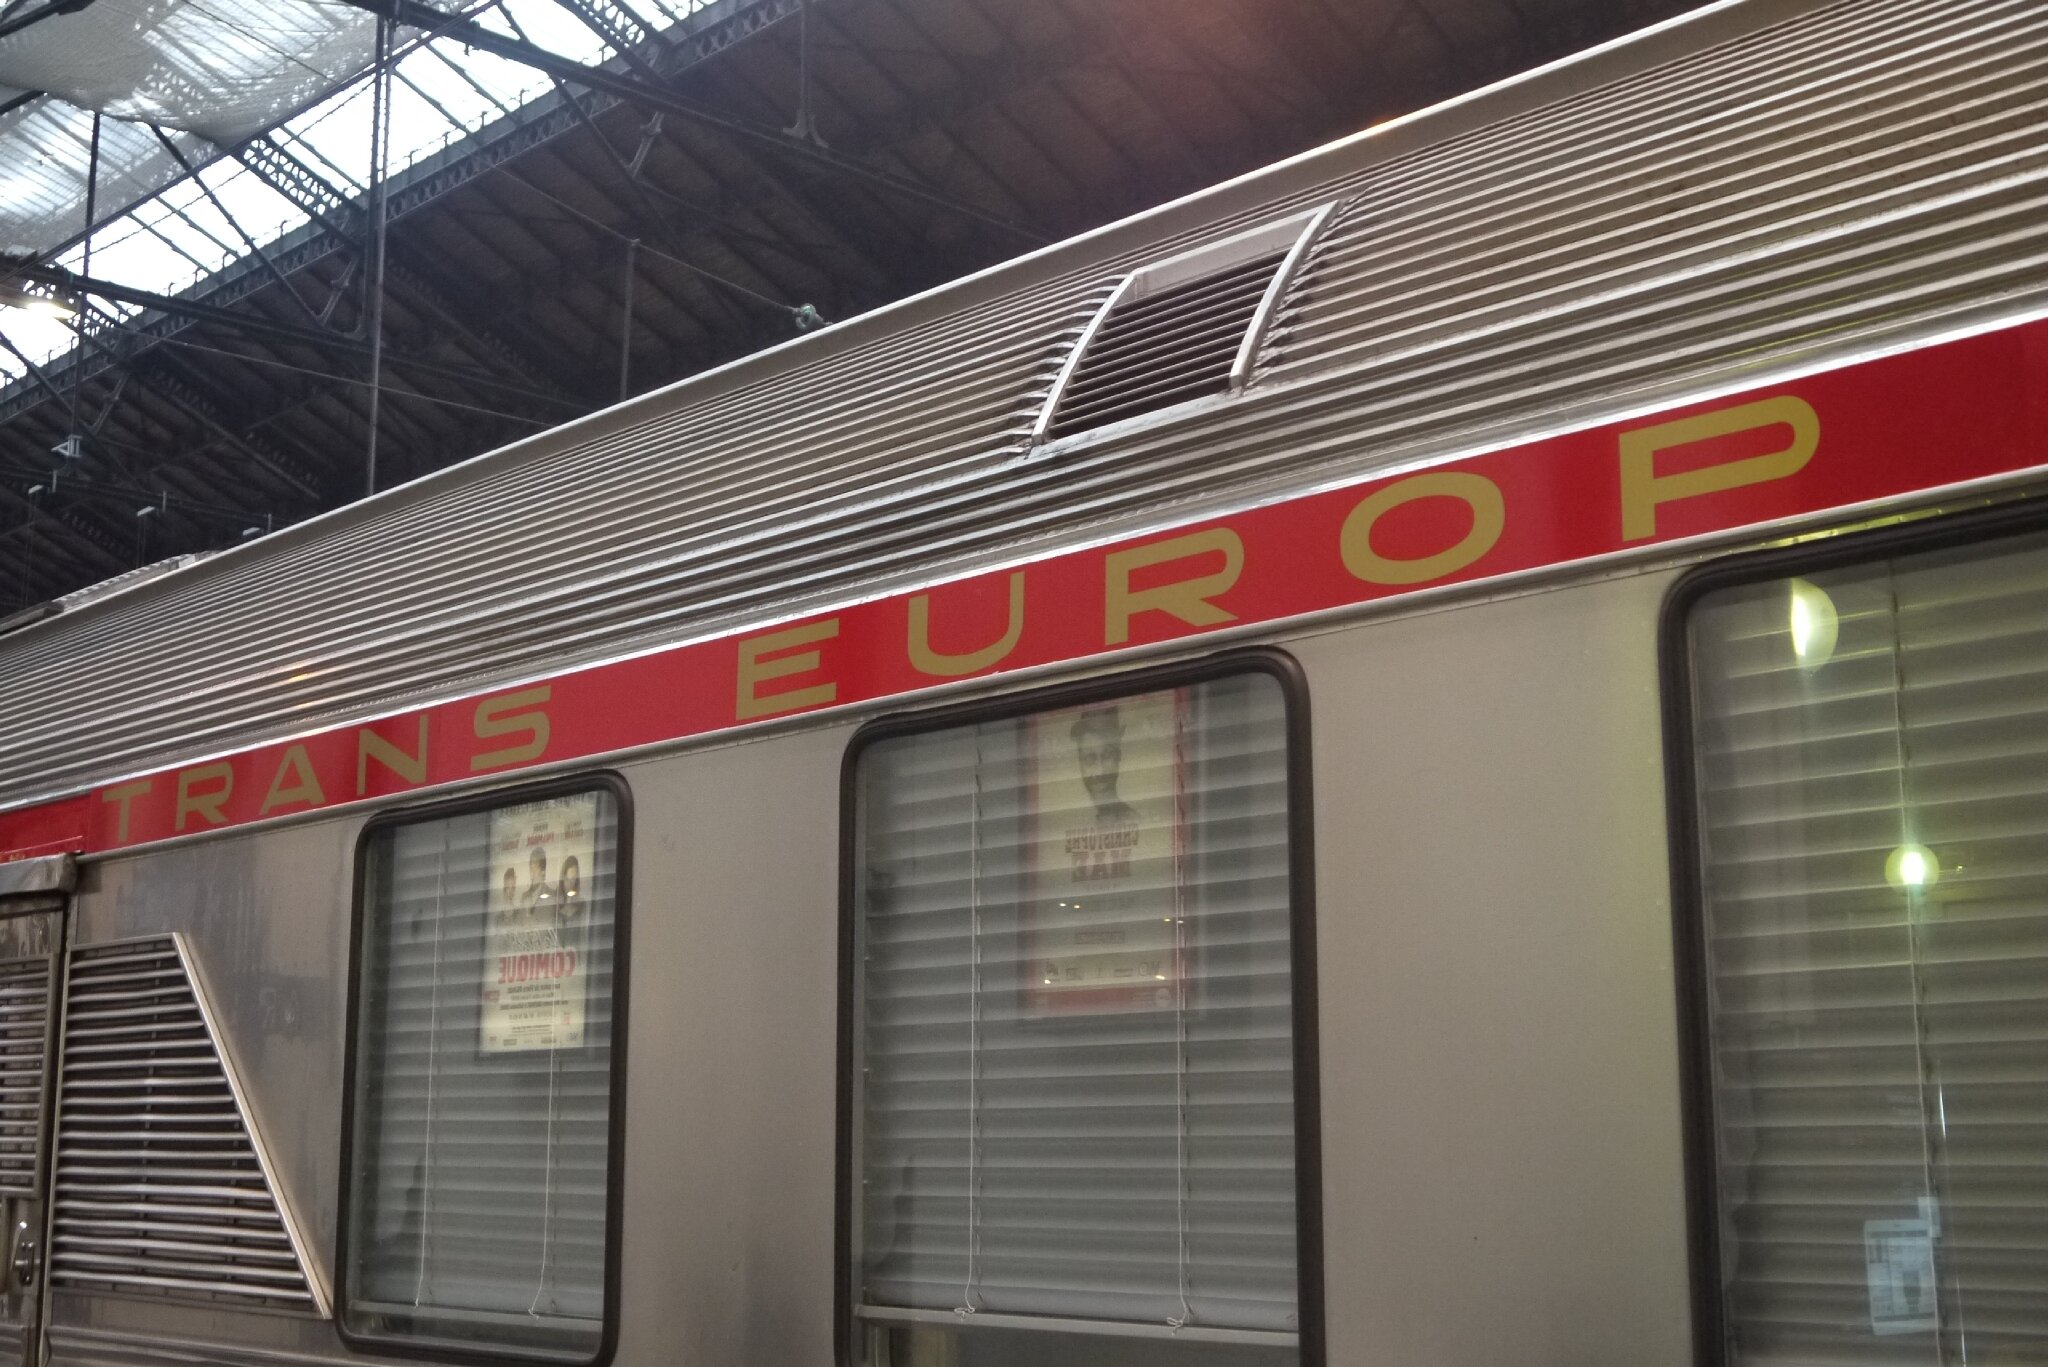 Voiture Mistral (Trans Europe Express)